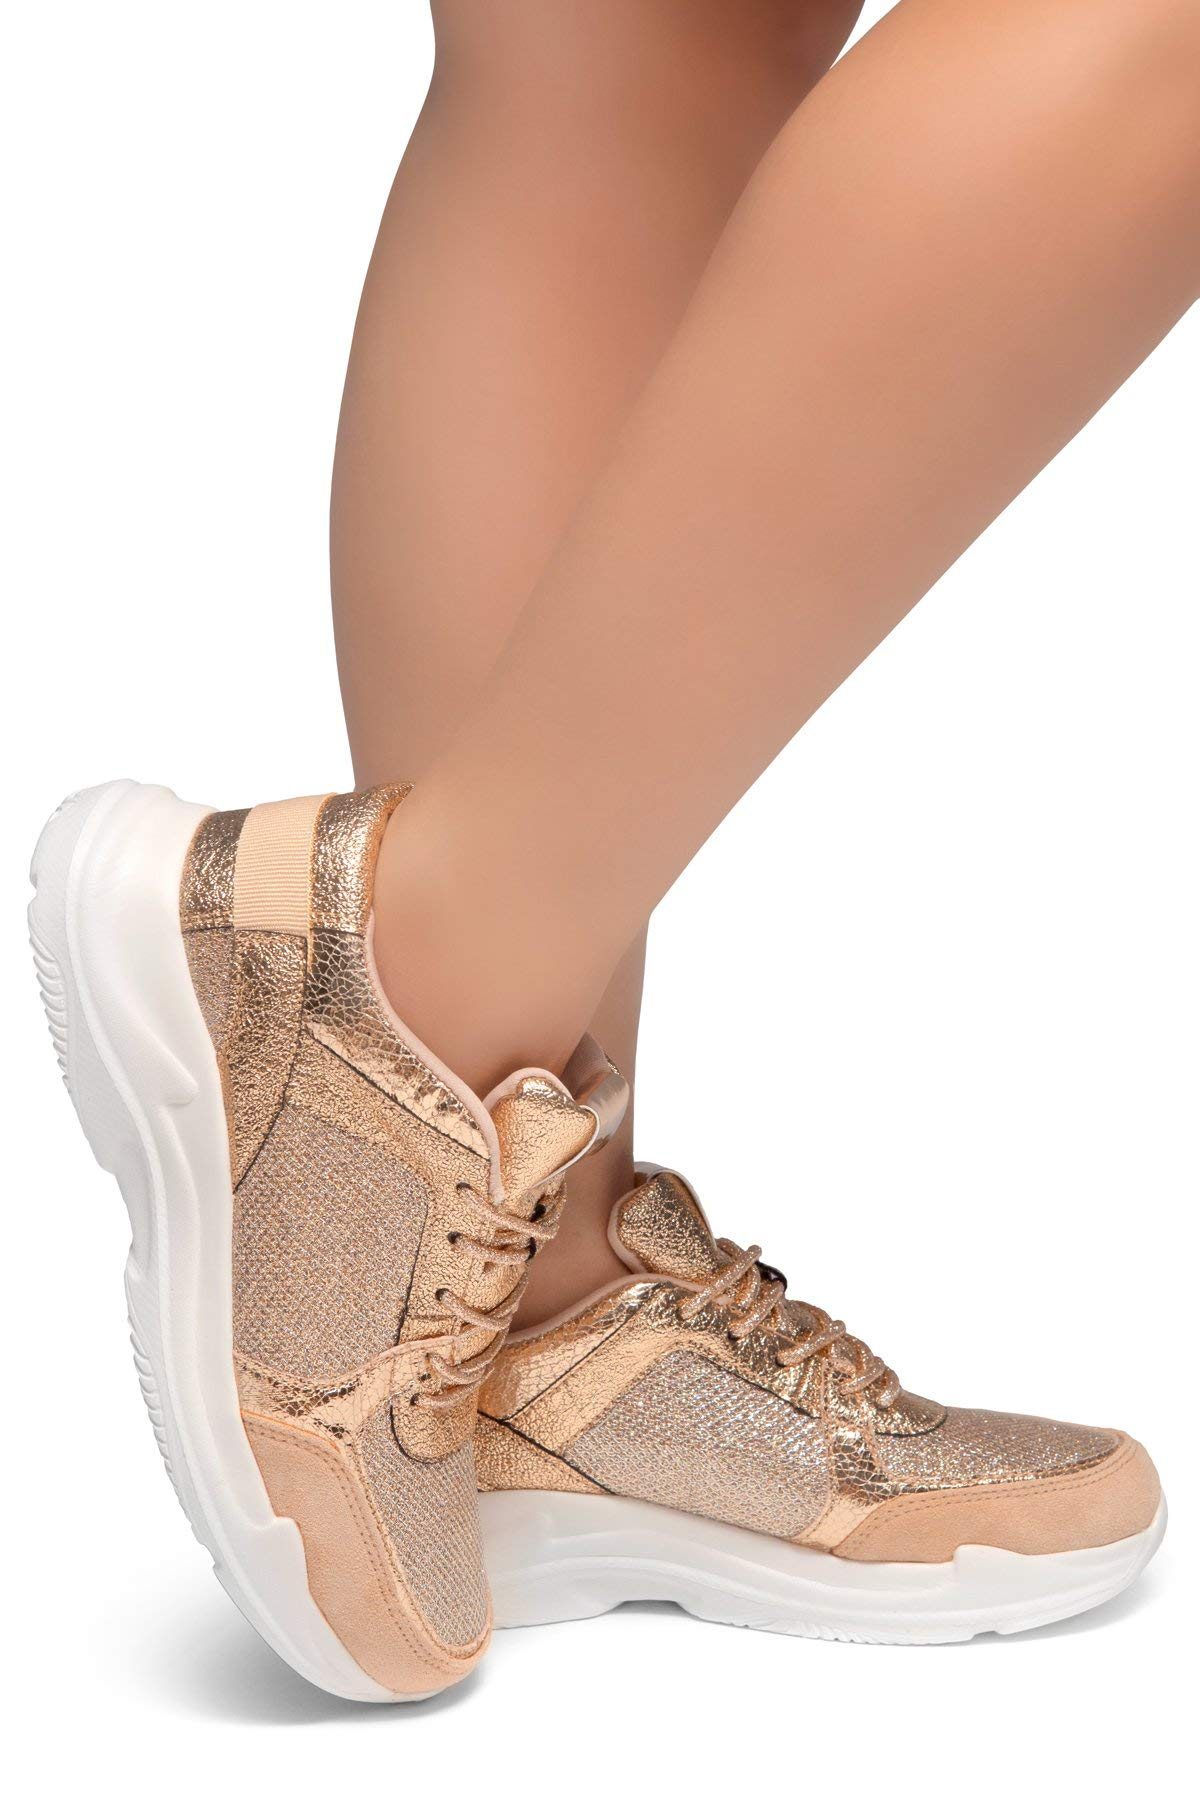 Herstyle Speedie- Front Lace Up, Spec Glitter Contrast Chic Style Sneakers Rose Gold/White 7.5